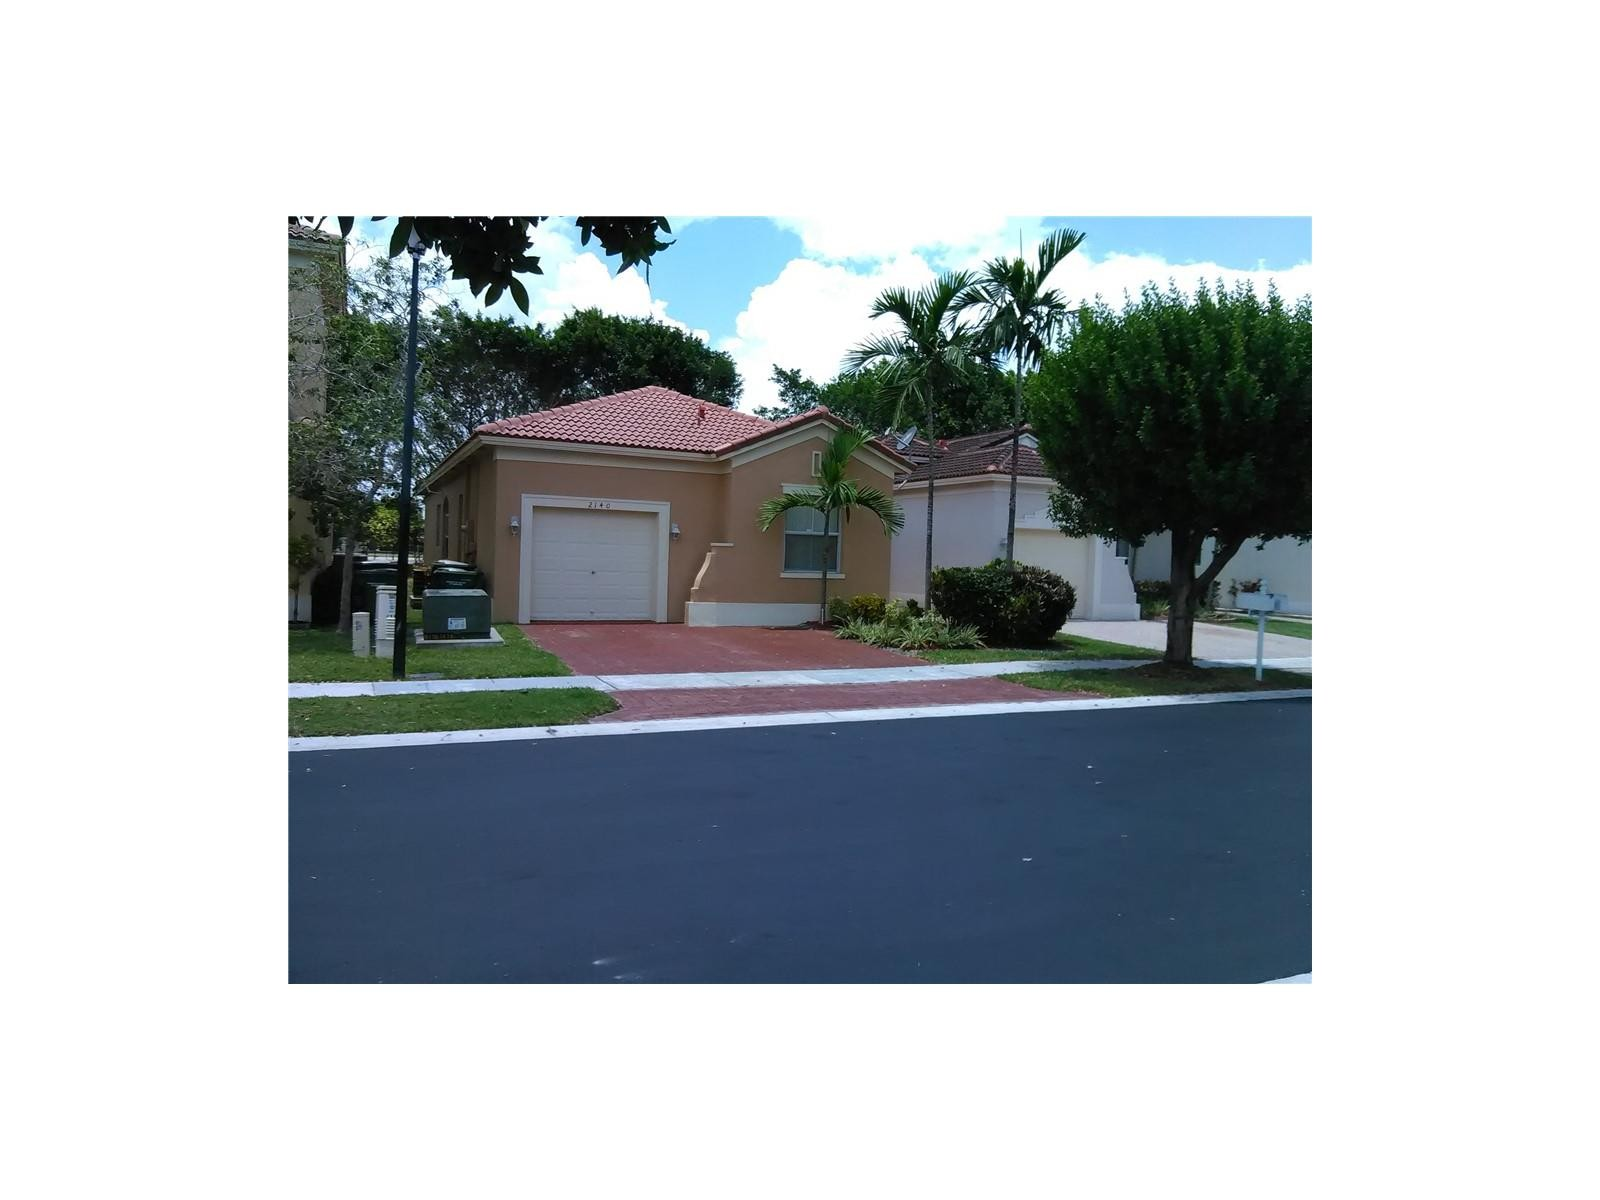 2140 Northeast 37th Terrace Homestead FL 33033 3 Bedroom House For Rent For